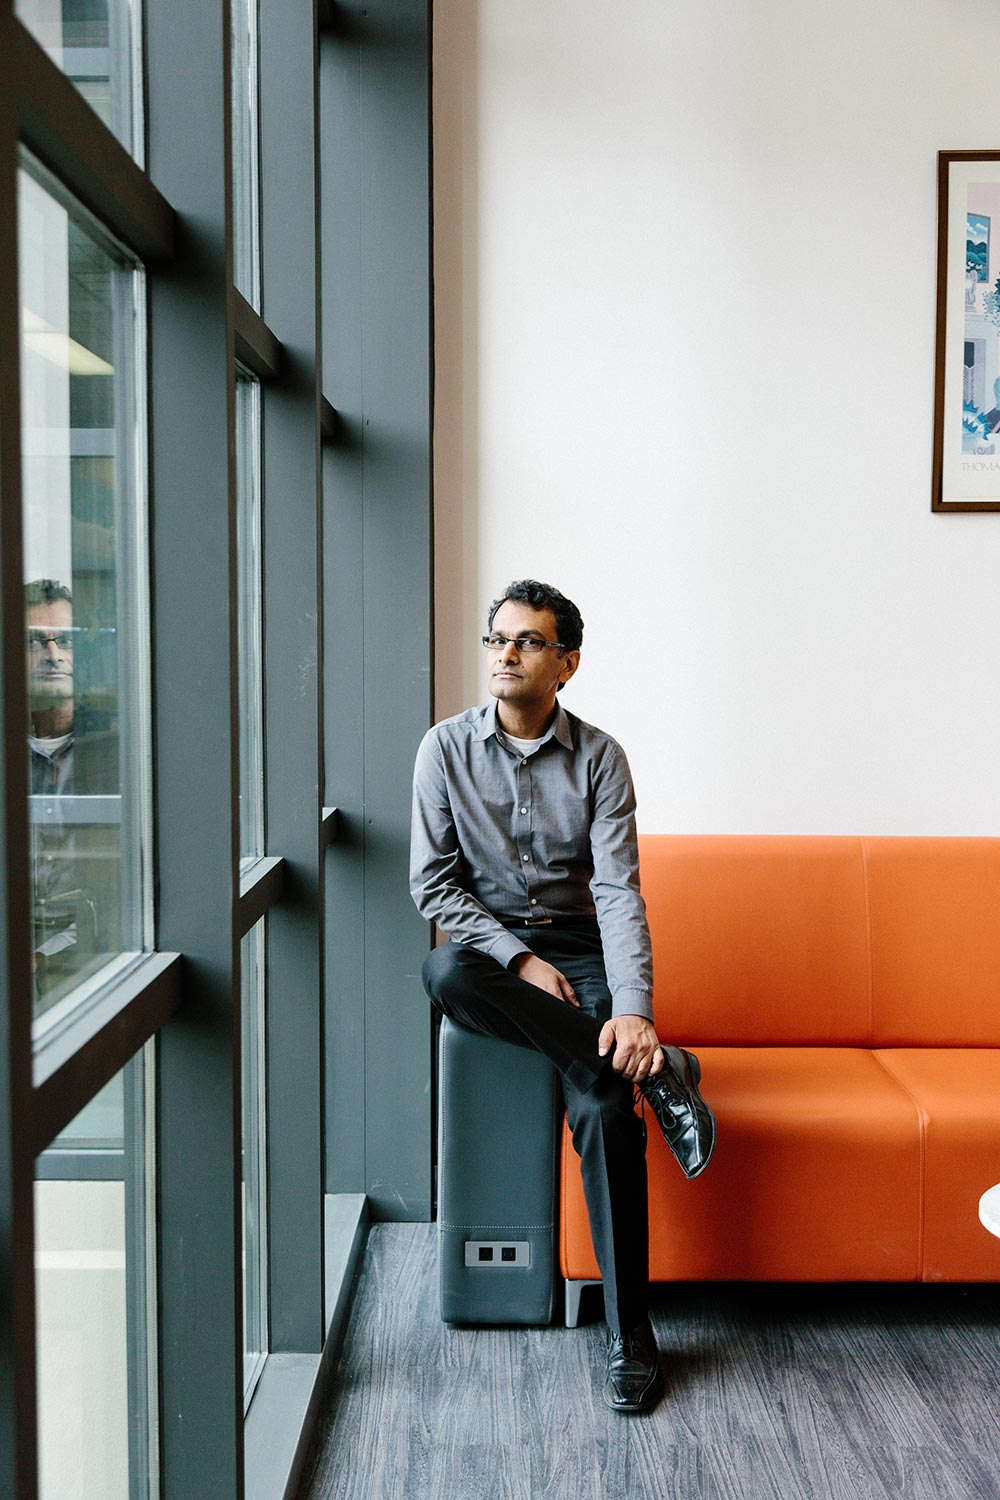 Khatri has built his reputation by drawing conclusions from clinical data that most other scientists thought was too diverse and mismatched to mine for genomic insights.